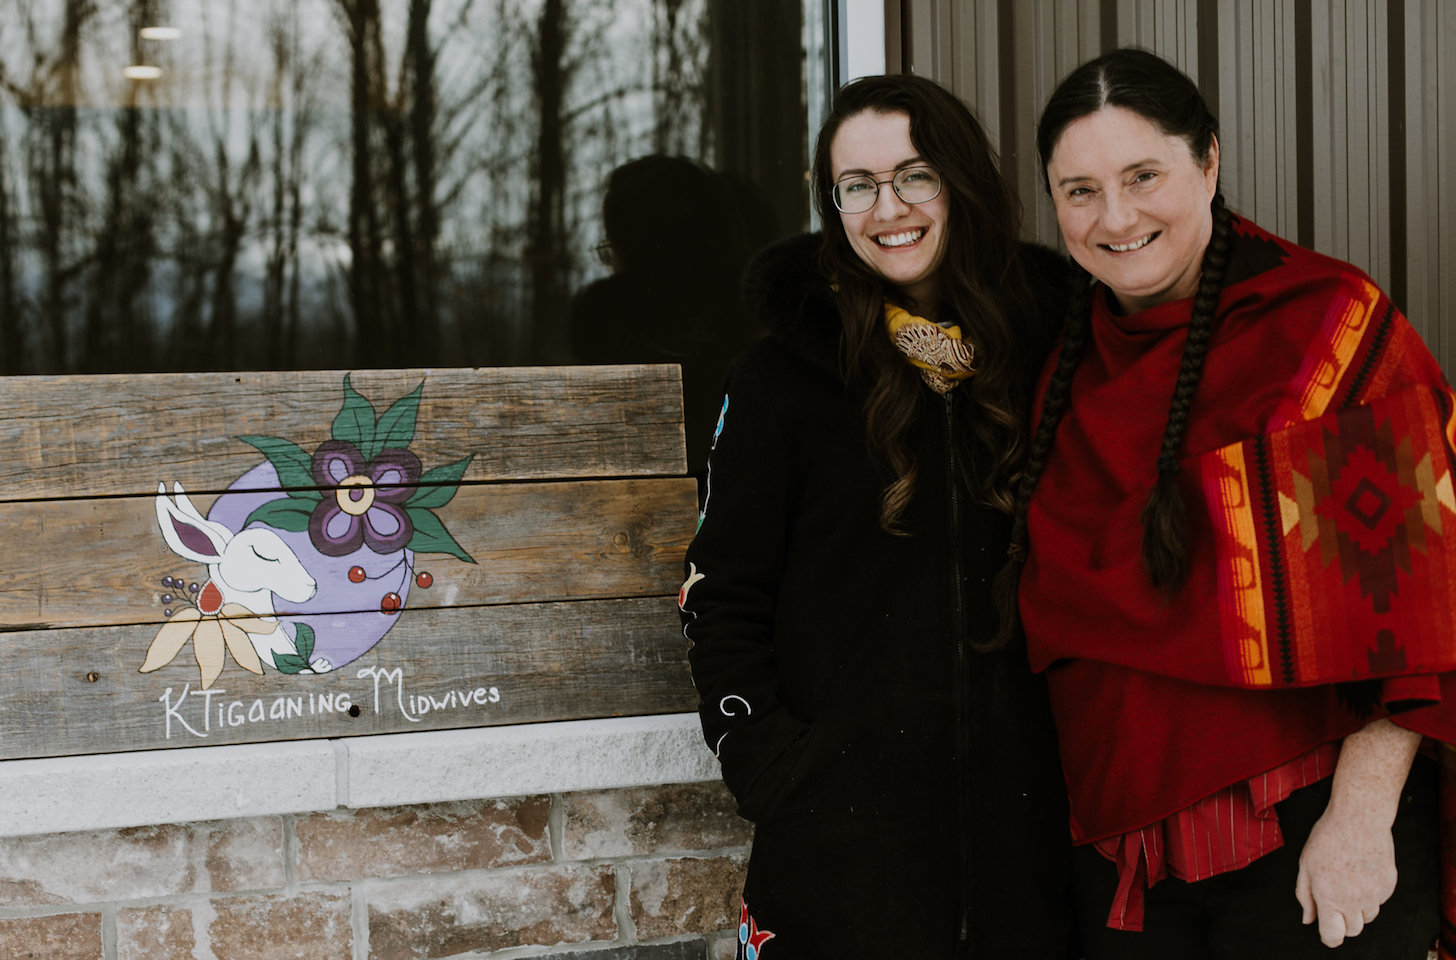 Midwives Rachel Dennis and Carol Couchie are bringing birth back to Indigenous communities